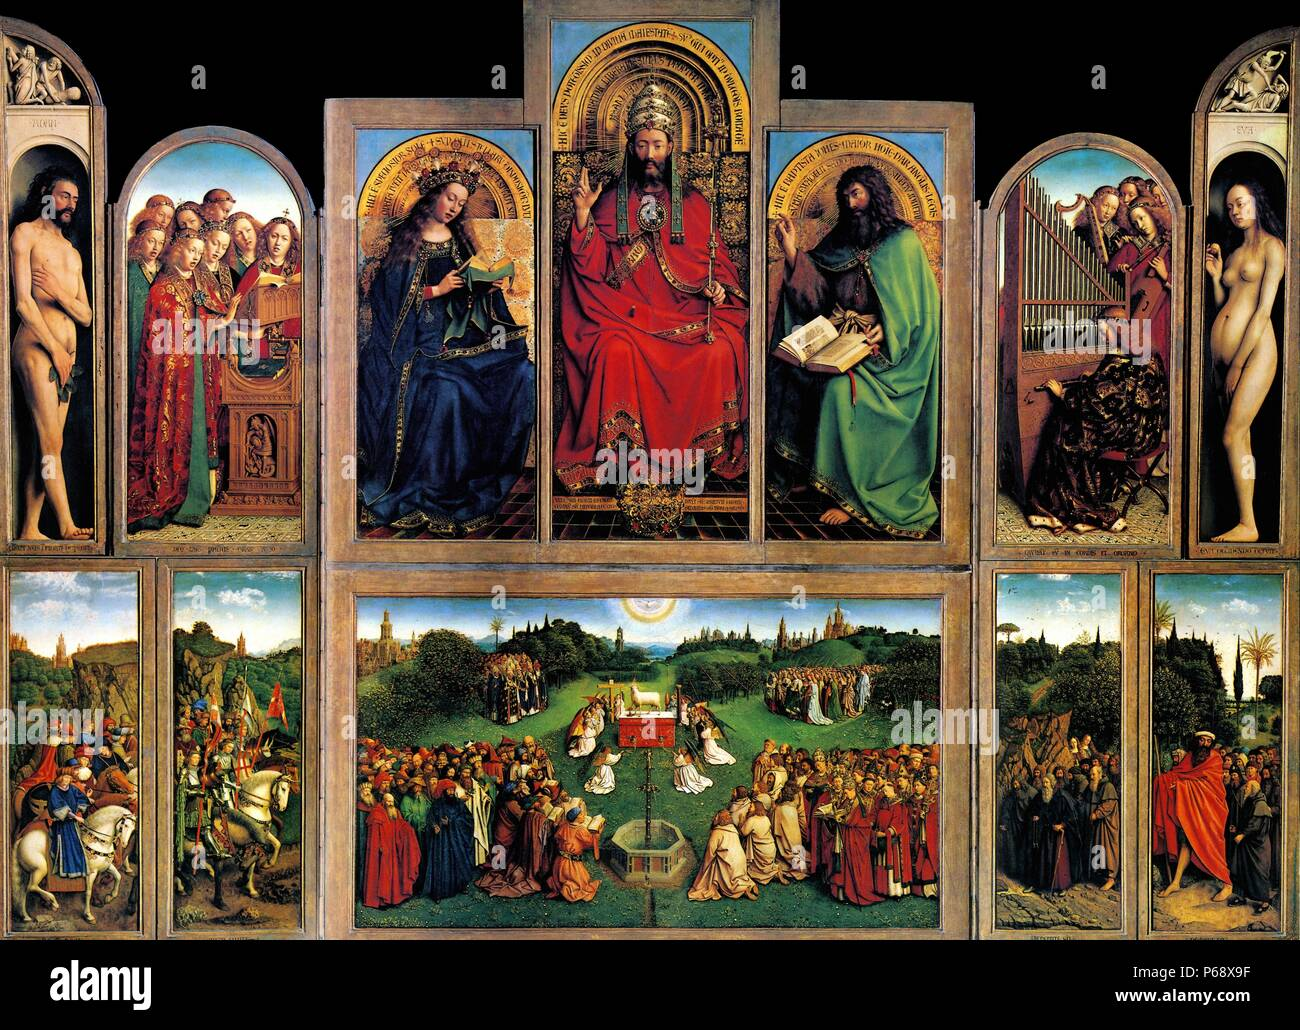 The first flemish panel painting of last supper was created by